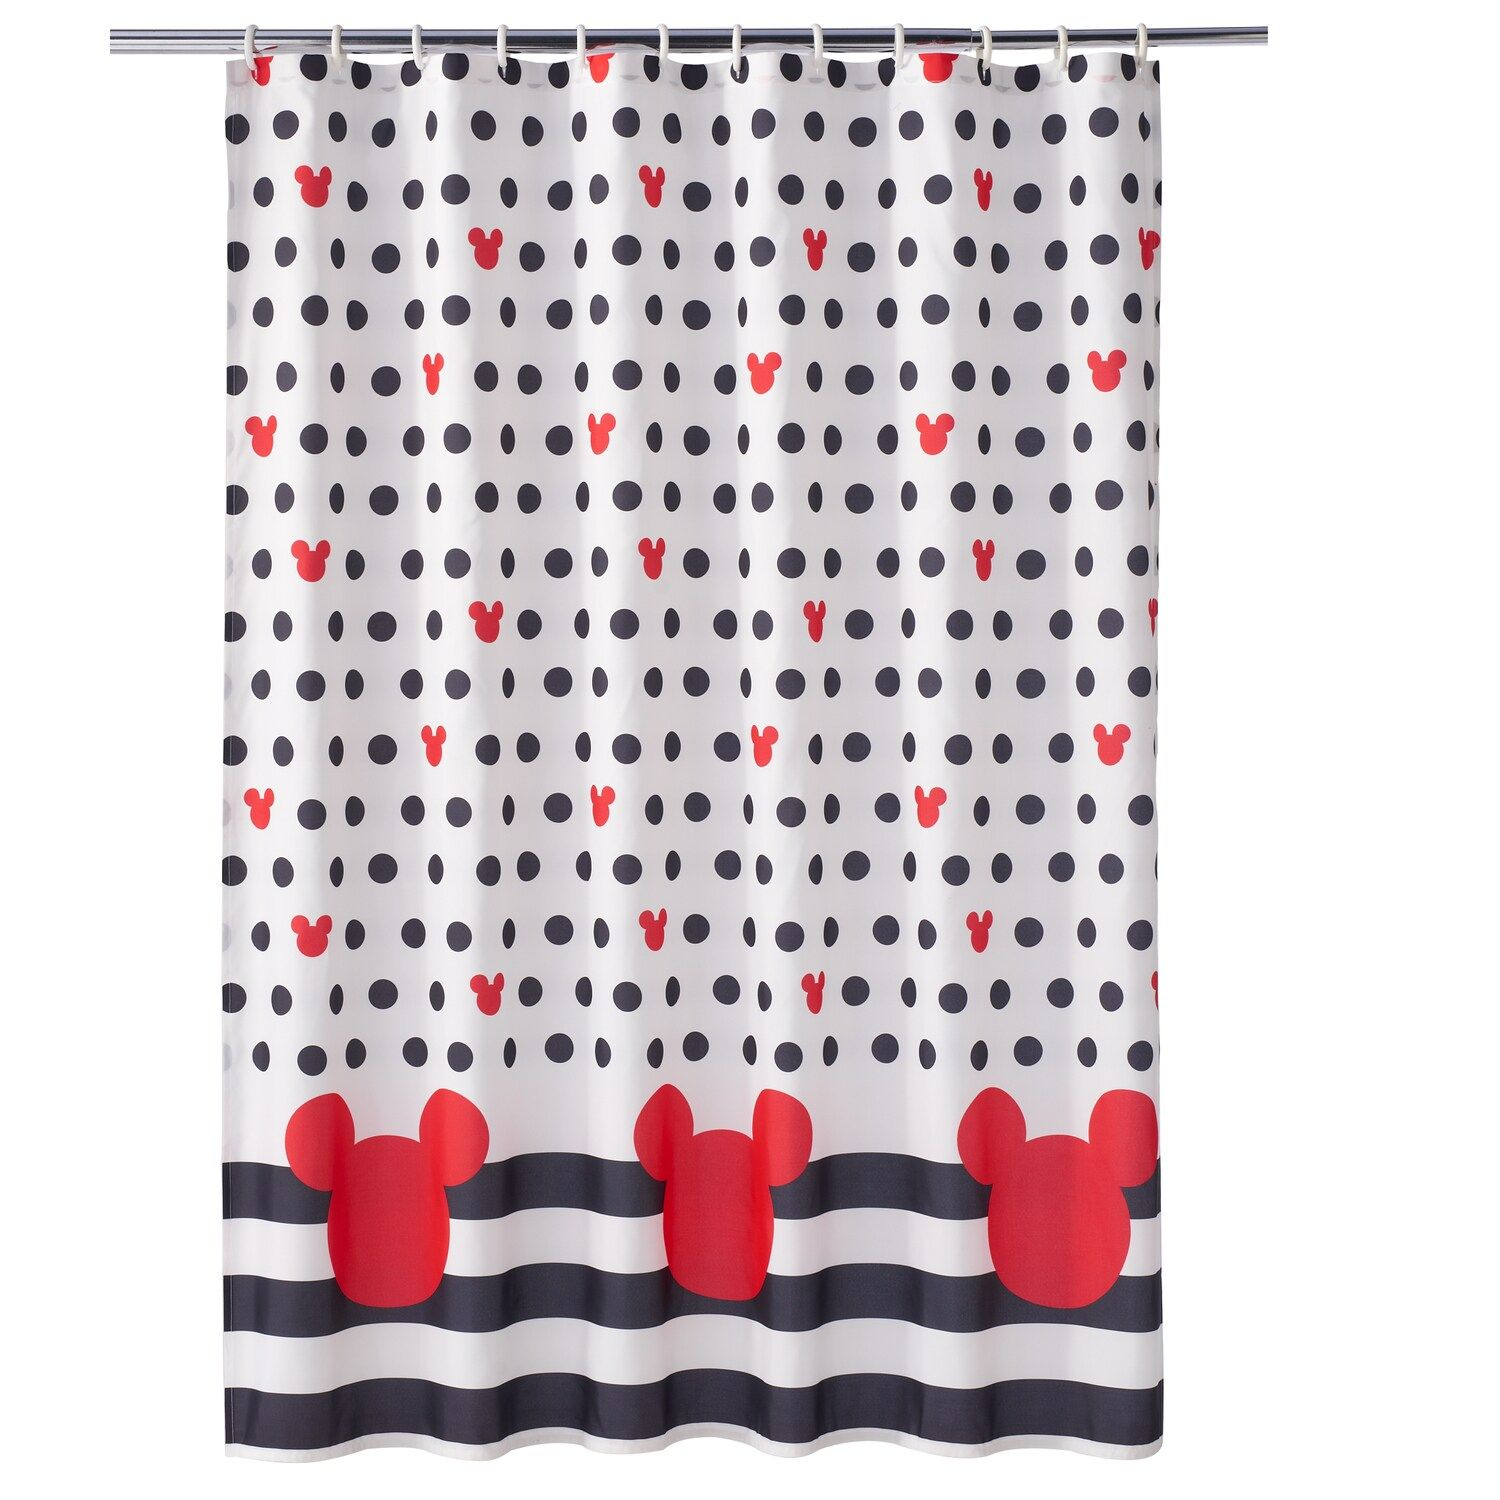 Disney S Mickey Minnie Mouse Bath Accessories Collection Affiliate Minnie Affiliate M Mickey Mouse Shower Curtain Mickey Mouse Bathroom Mickey Bathroom